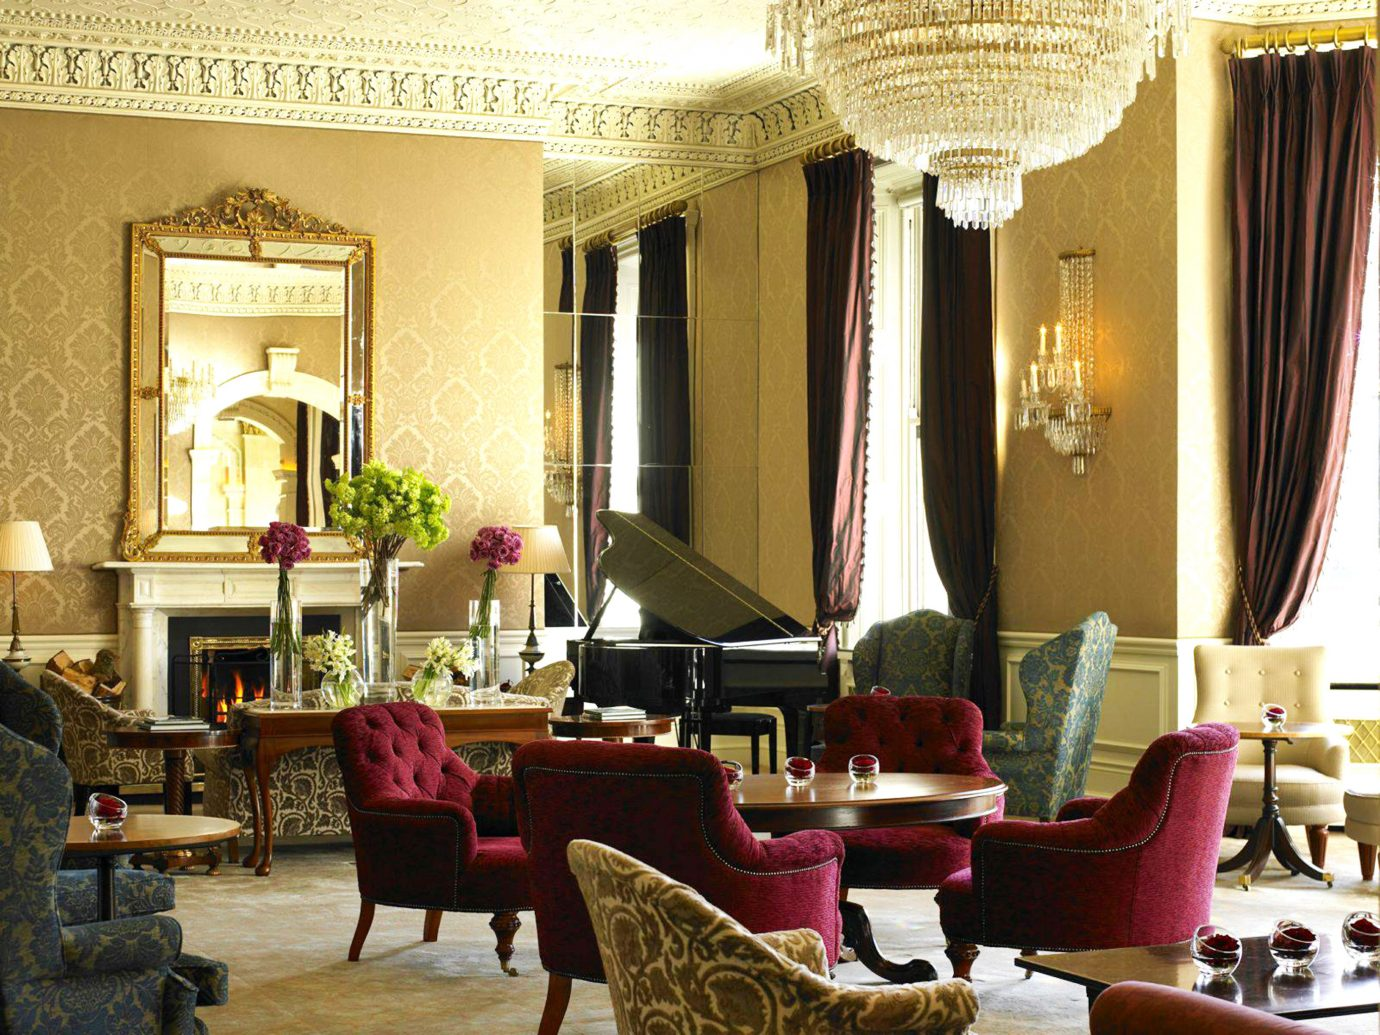 Classic Dublin Elegant Hotels Ireland Lounge Luxury indoor Living room floor chair living room property furniture estate Lobby interior design home restaurant dining room Suite Villa mansion decorated area arranged